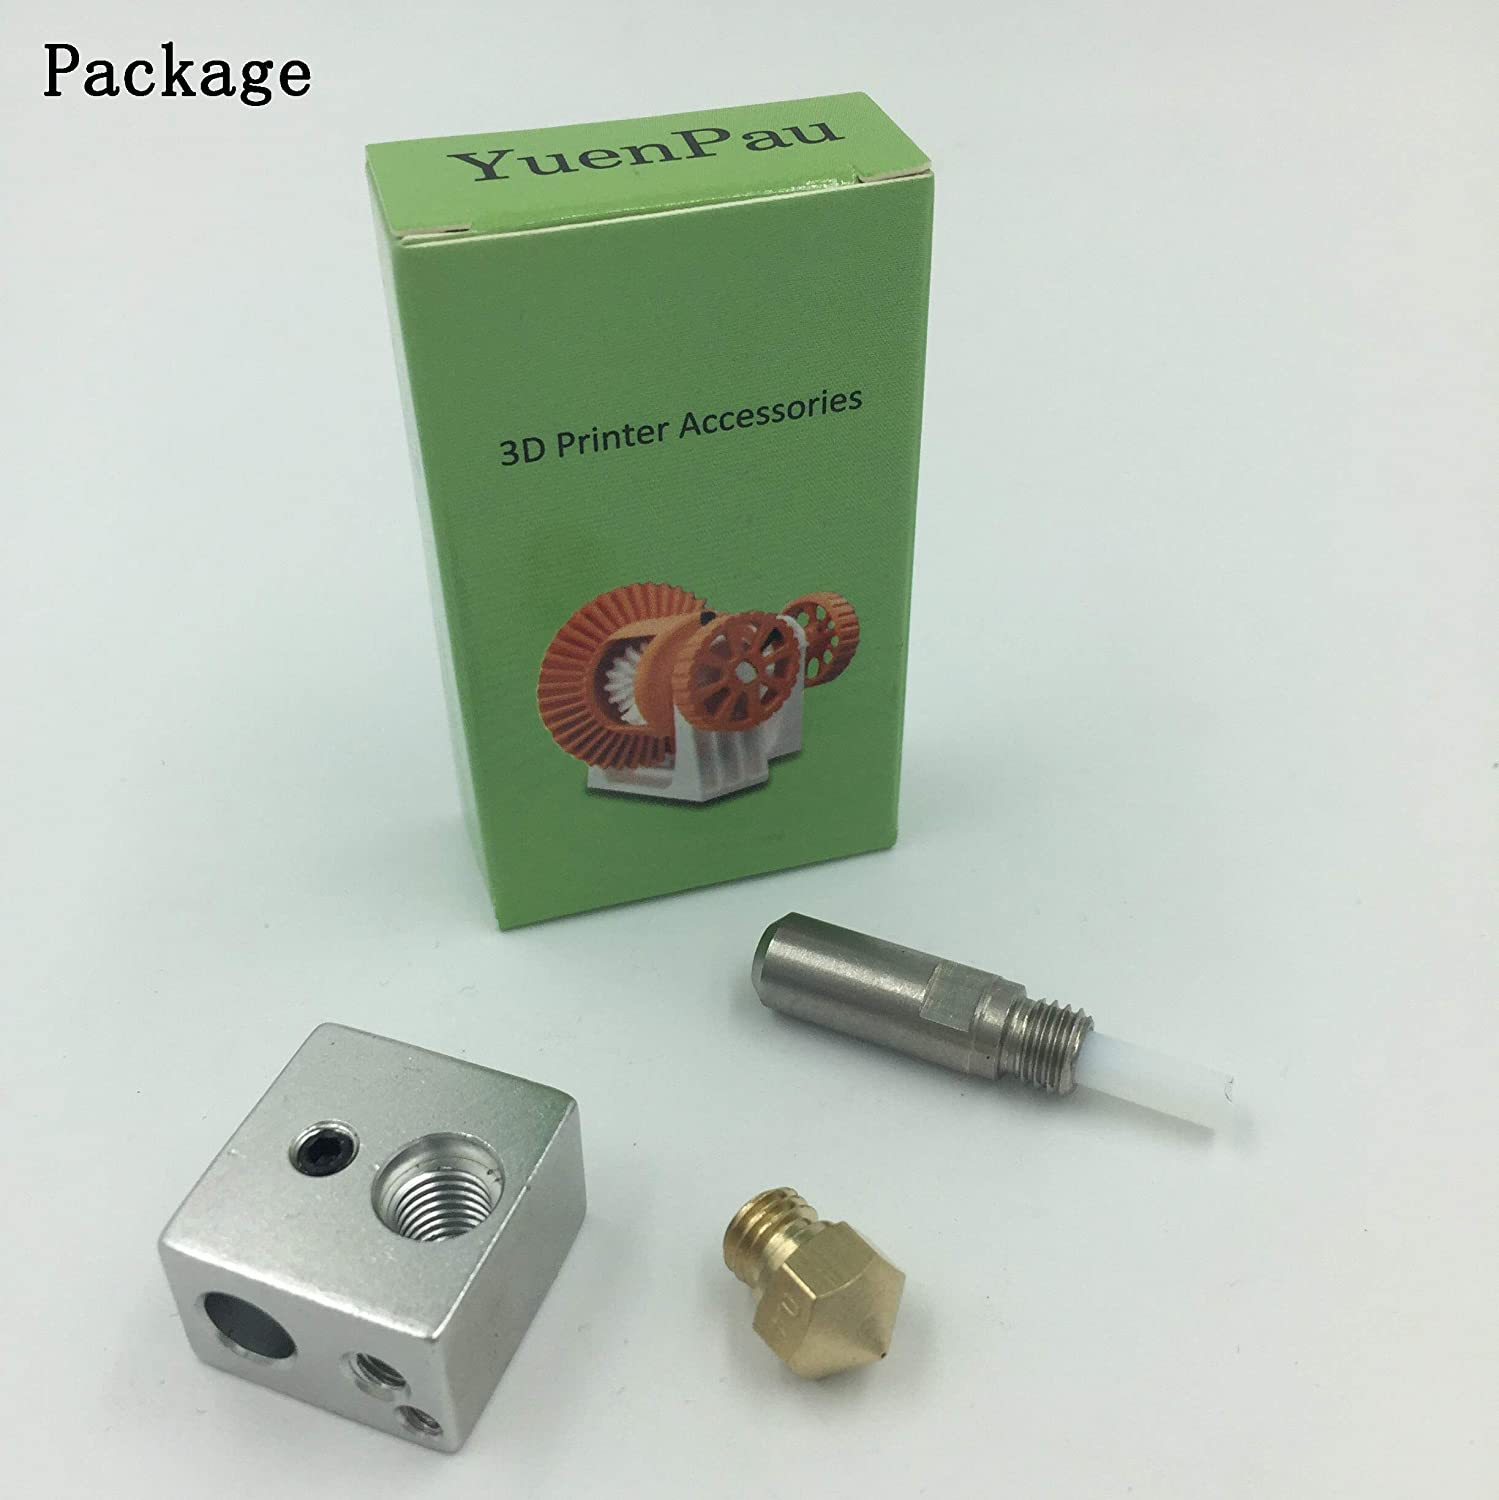 YuenPau MK10 Hotend Kit for 3D Printer M7 Brass Nozzle and Throat with PTFE Tube and Aluminum Heater Block Fit with M3 and M4 Thermistor Xingxi